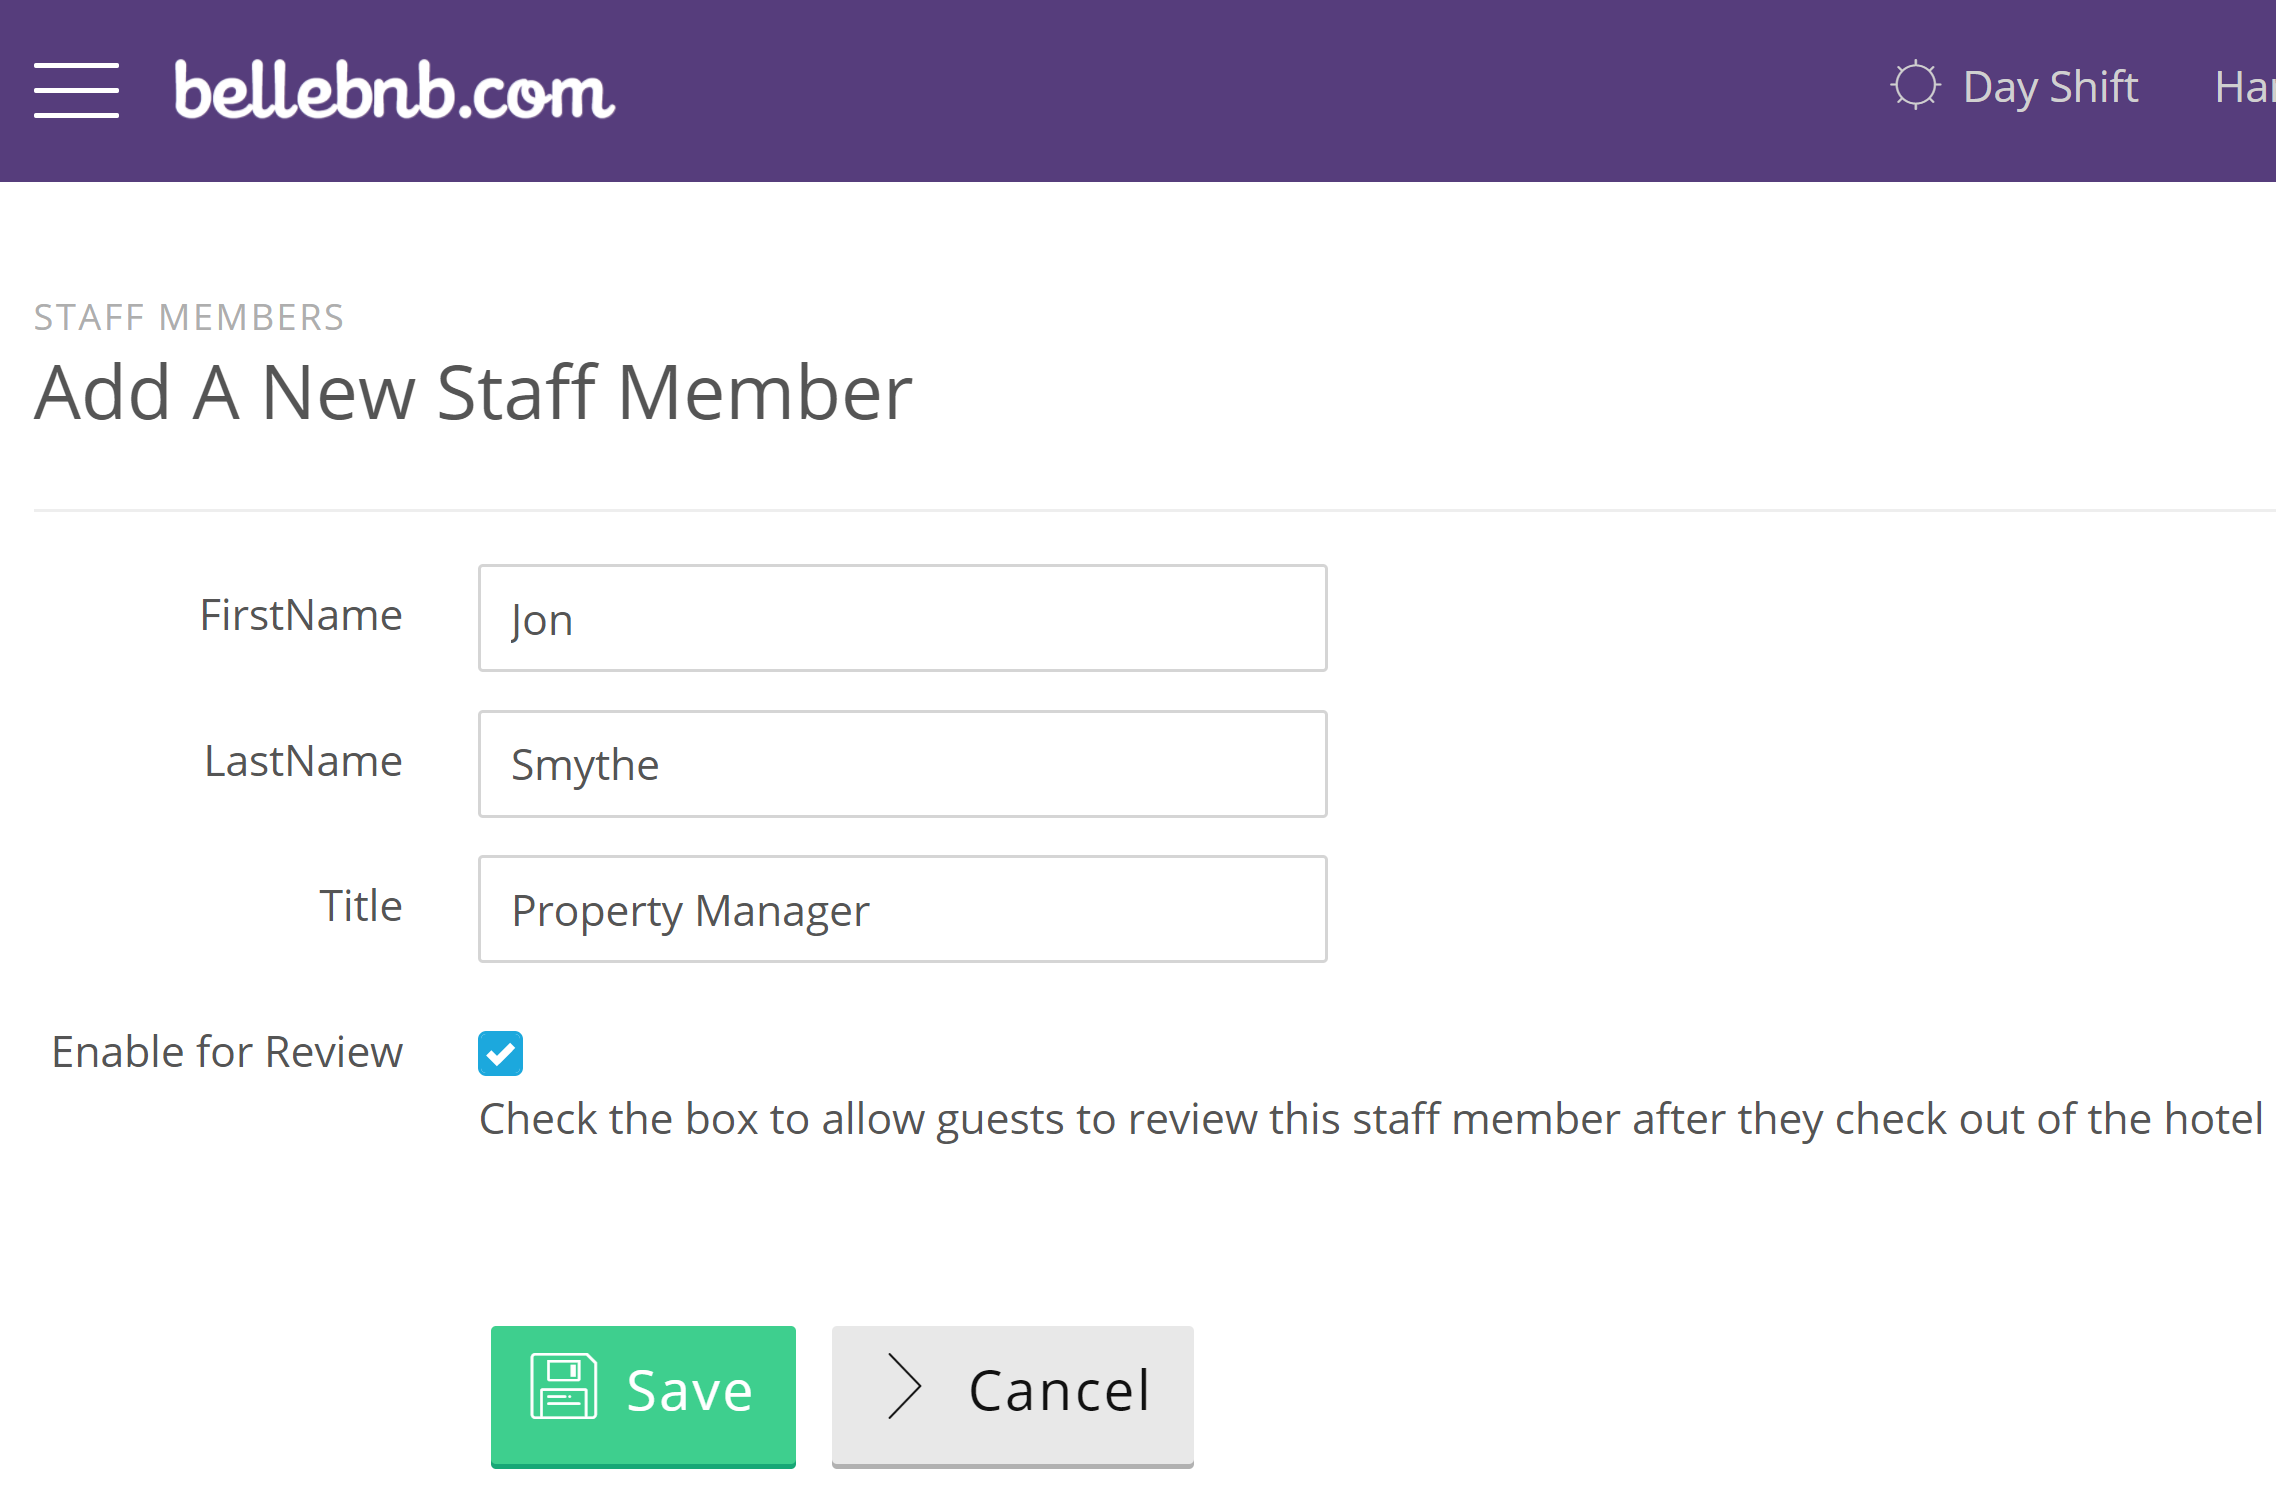 Hotel Staff' in the left navigation menu, then click 'Add a Staff Member.' Enter the staff member's name and check the box if you would like to enable them for review